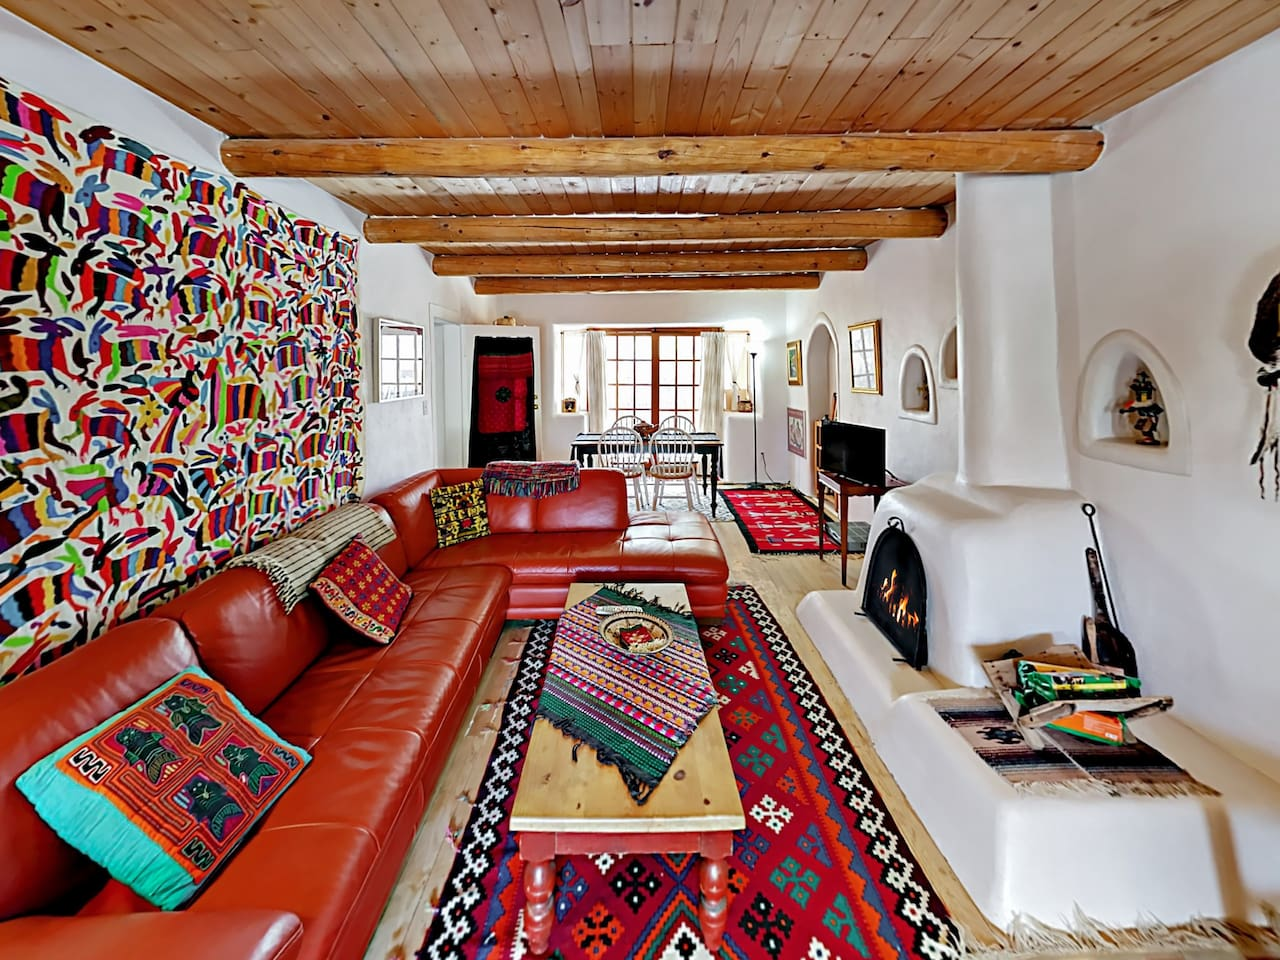 Welcome to Taos! This charming Southwestern abode is professionally managed by TurnKey Vacation Rentals.